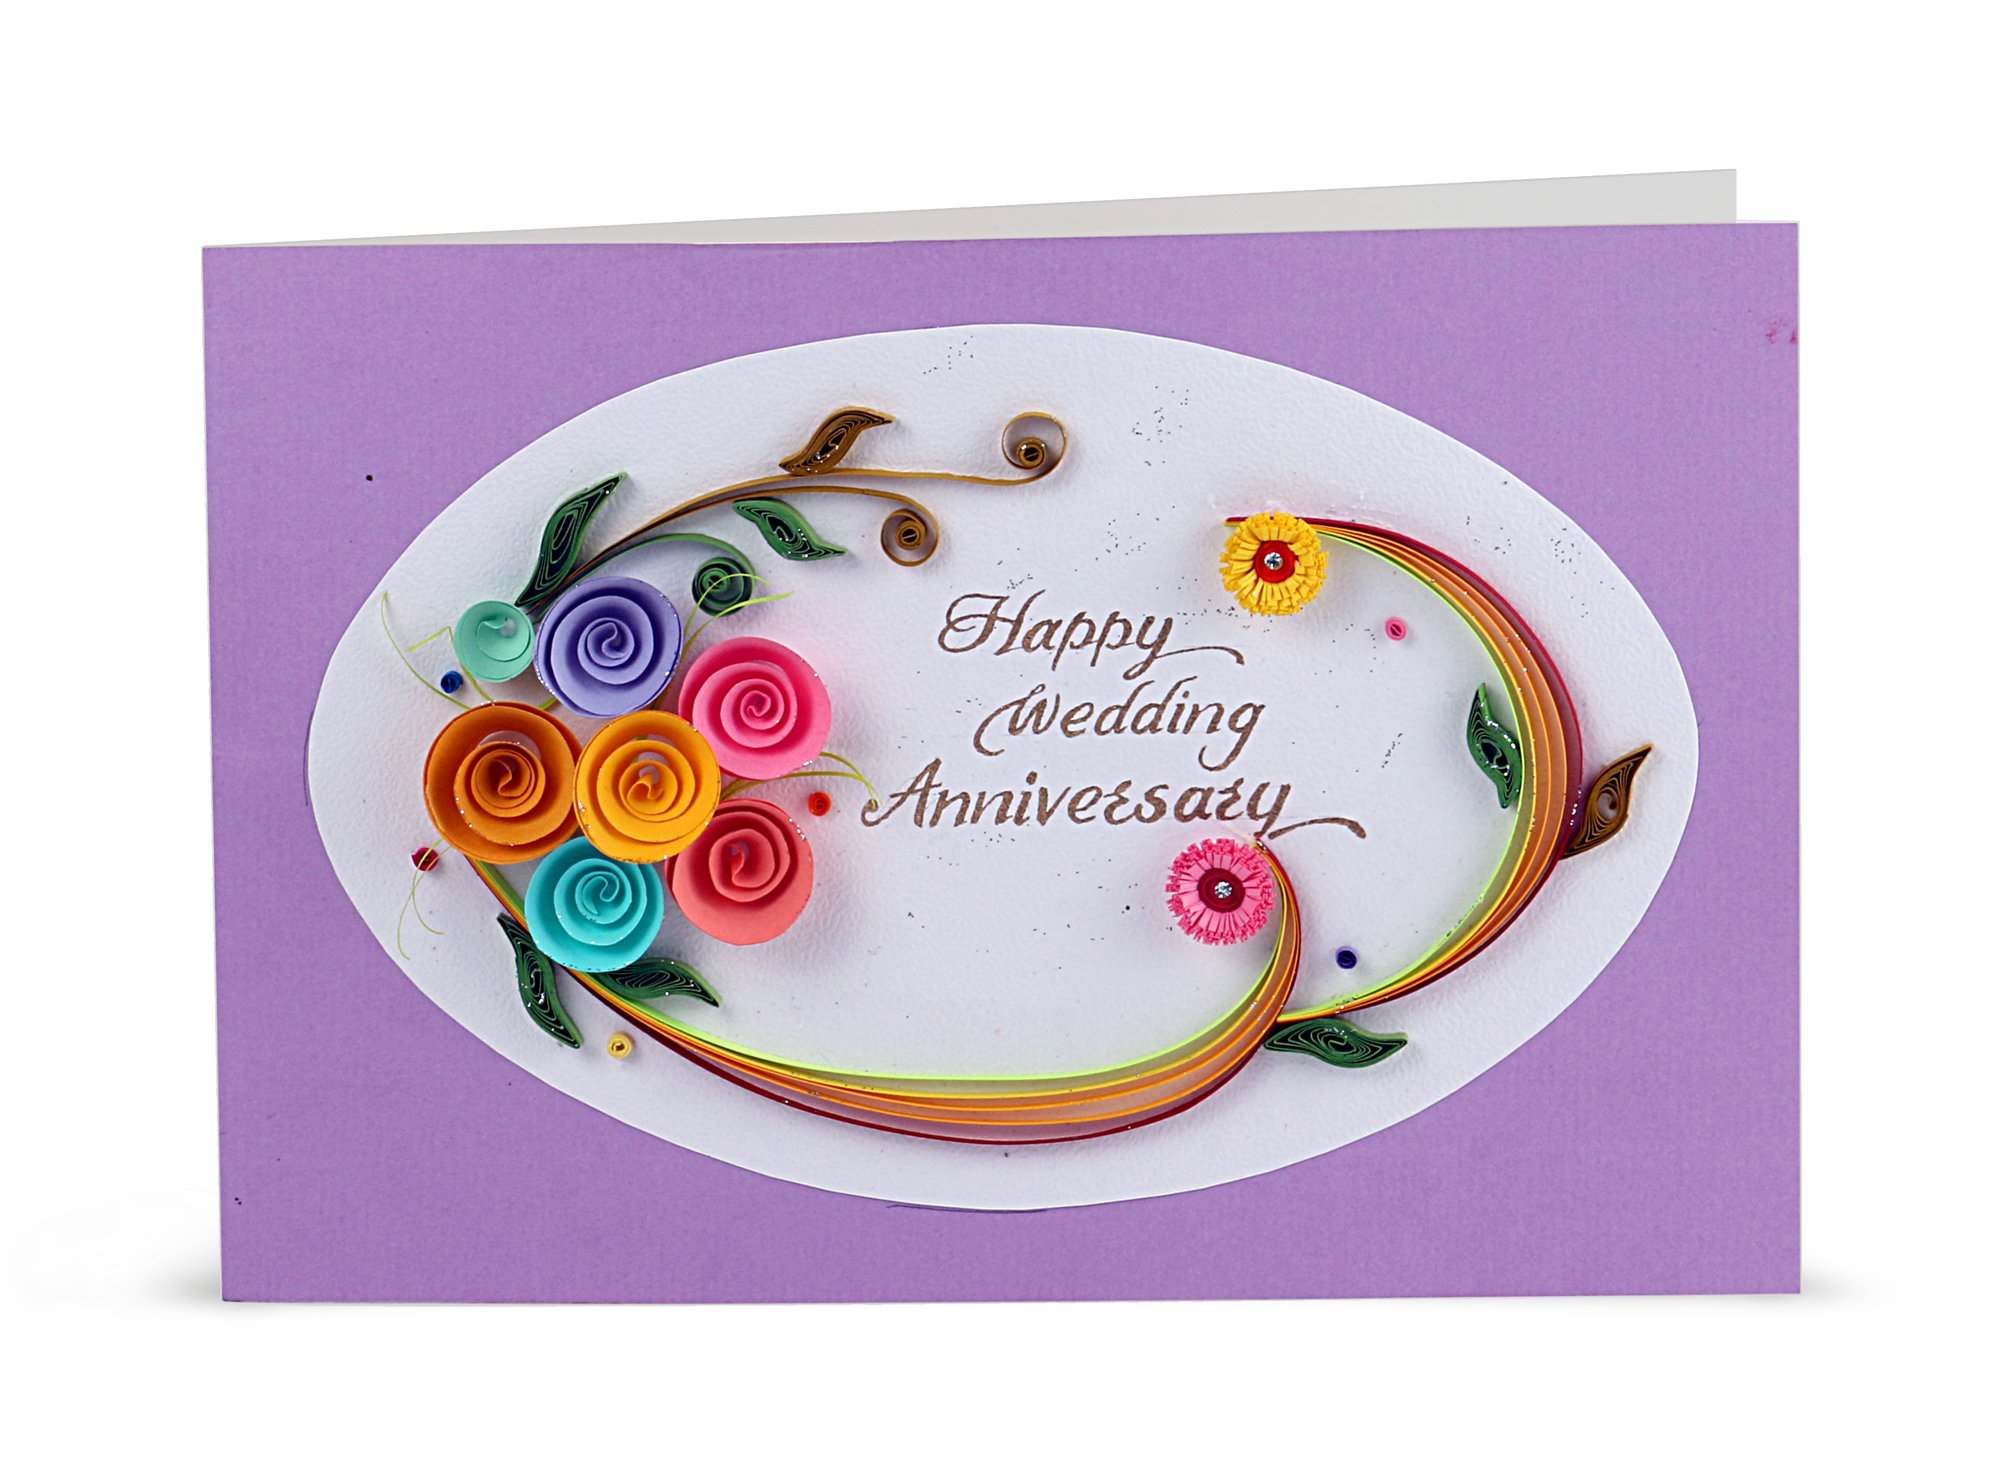 Greeting Cards For Anniversary Buy Greeting Cards For Anniversary